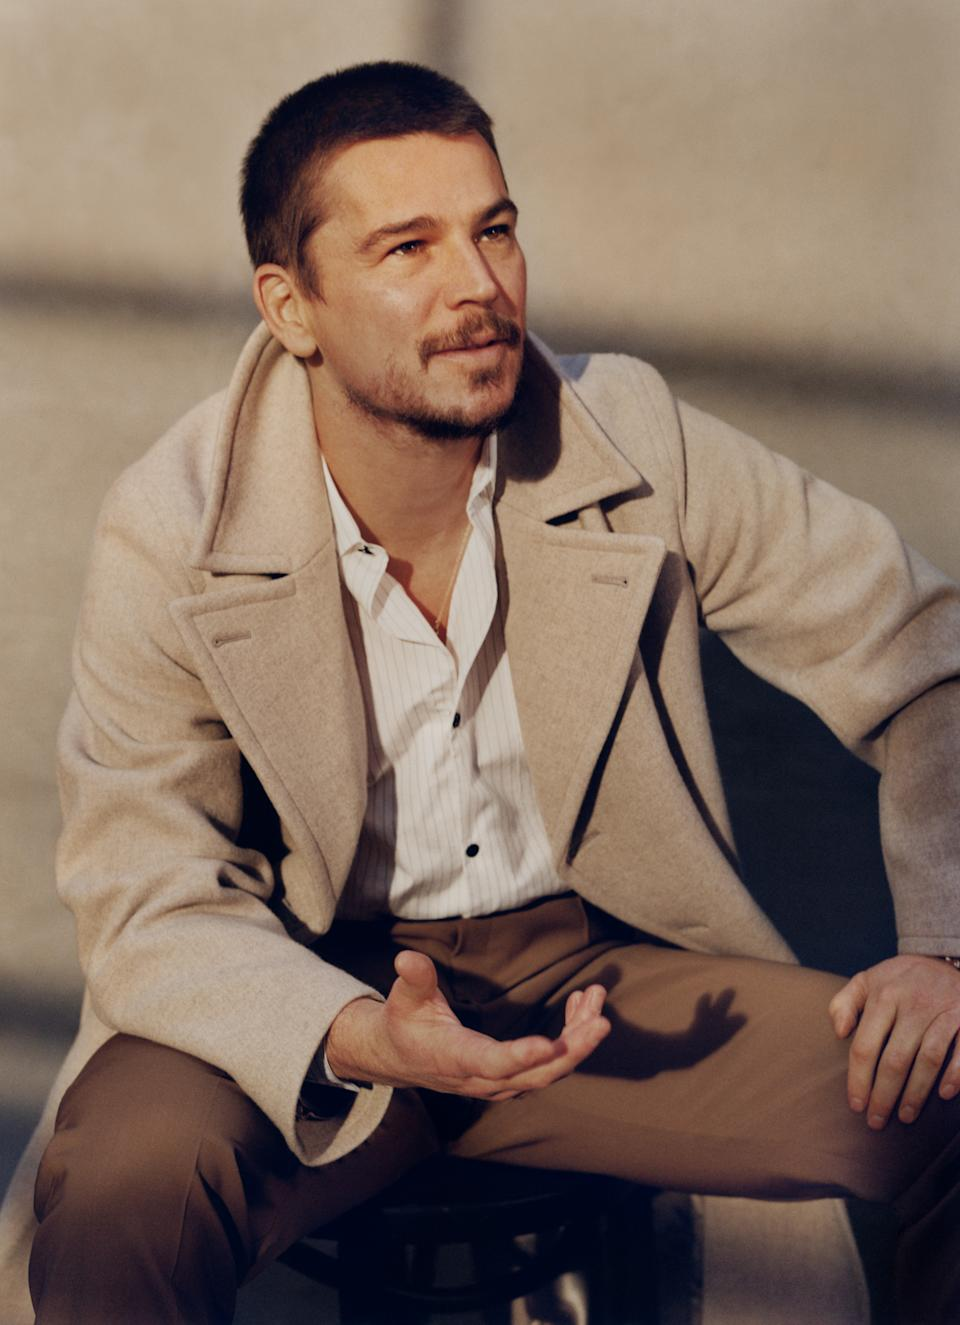 Josh Hartnett appears in the new edition of Mr Porter. (Photo: Ben Weller/Mr Porter)